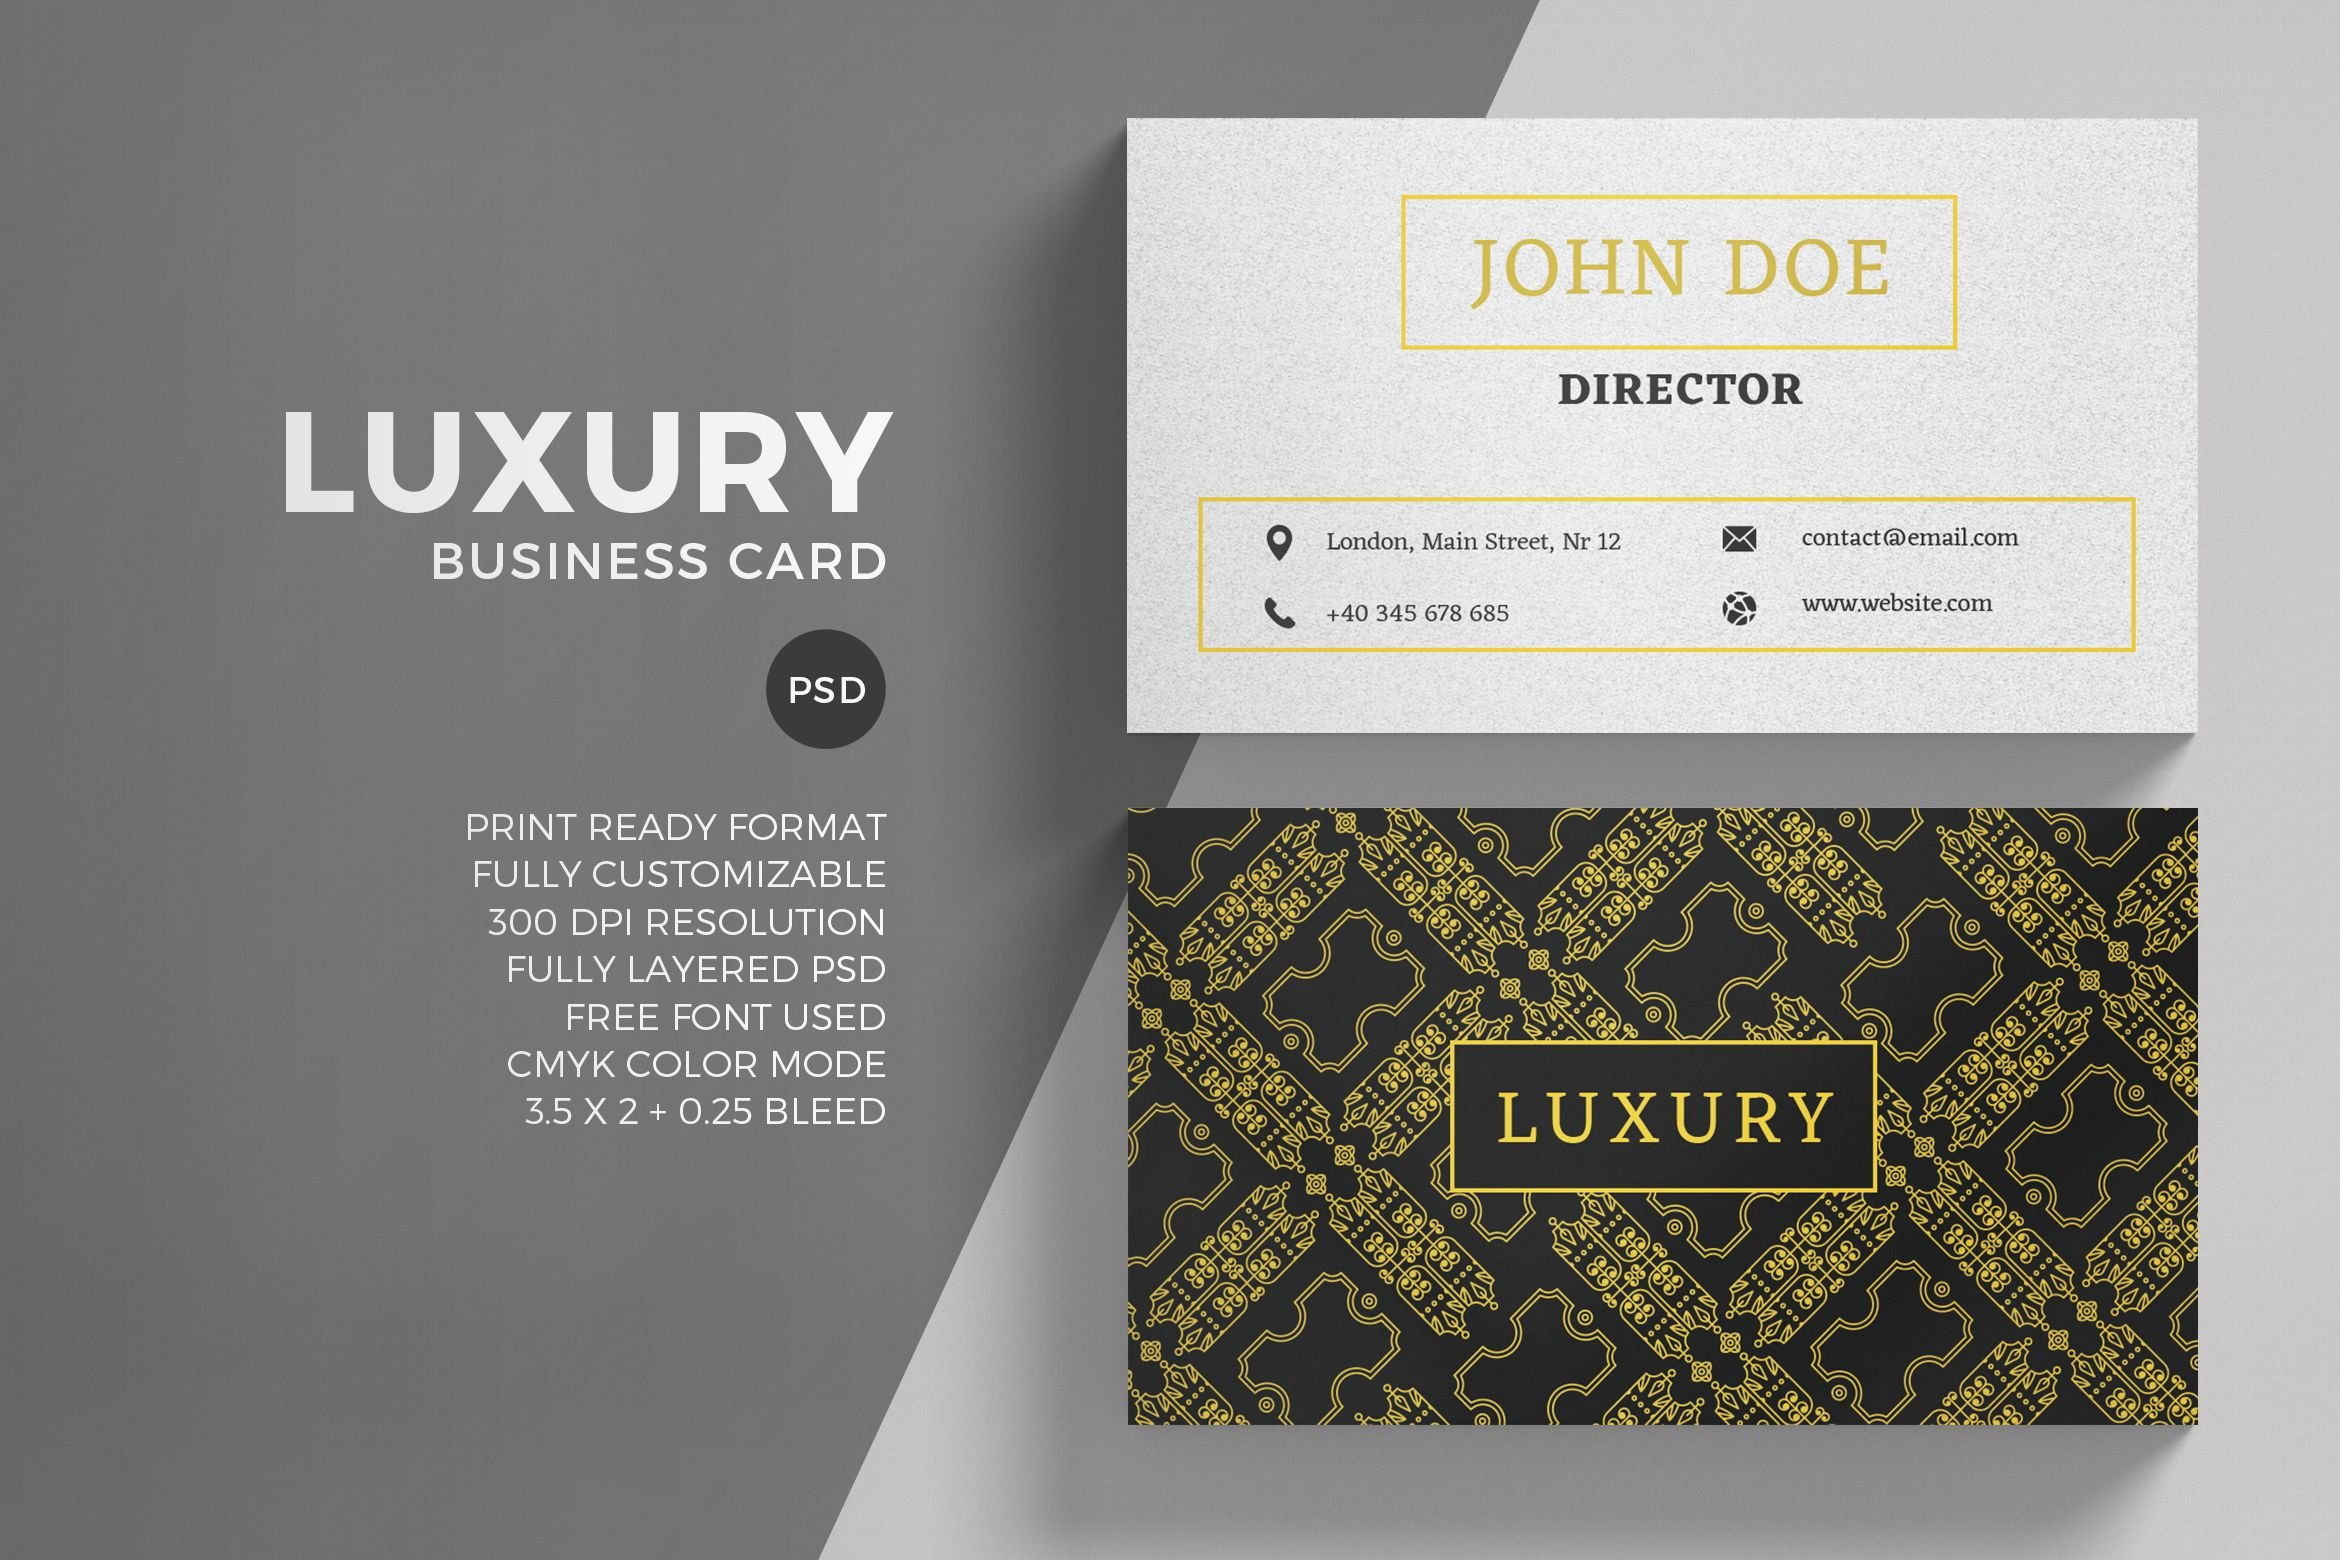 Luxury Business Card Template ~ Business Card Templates ~ Creative ...